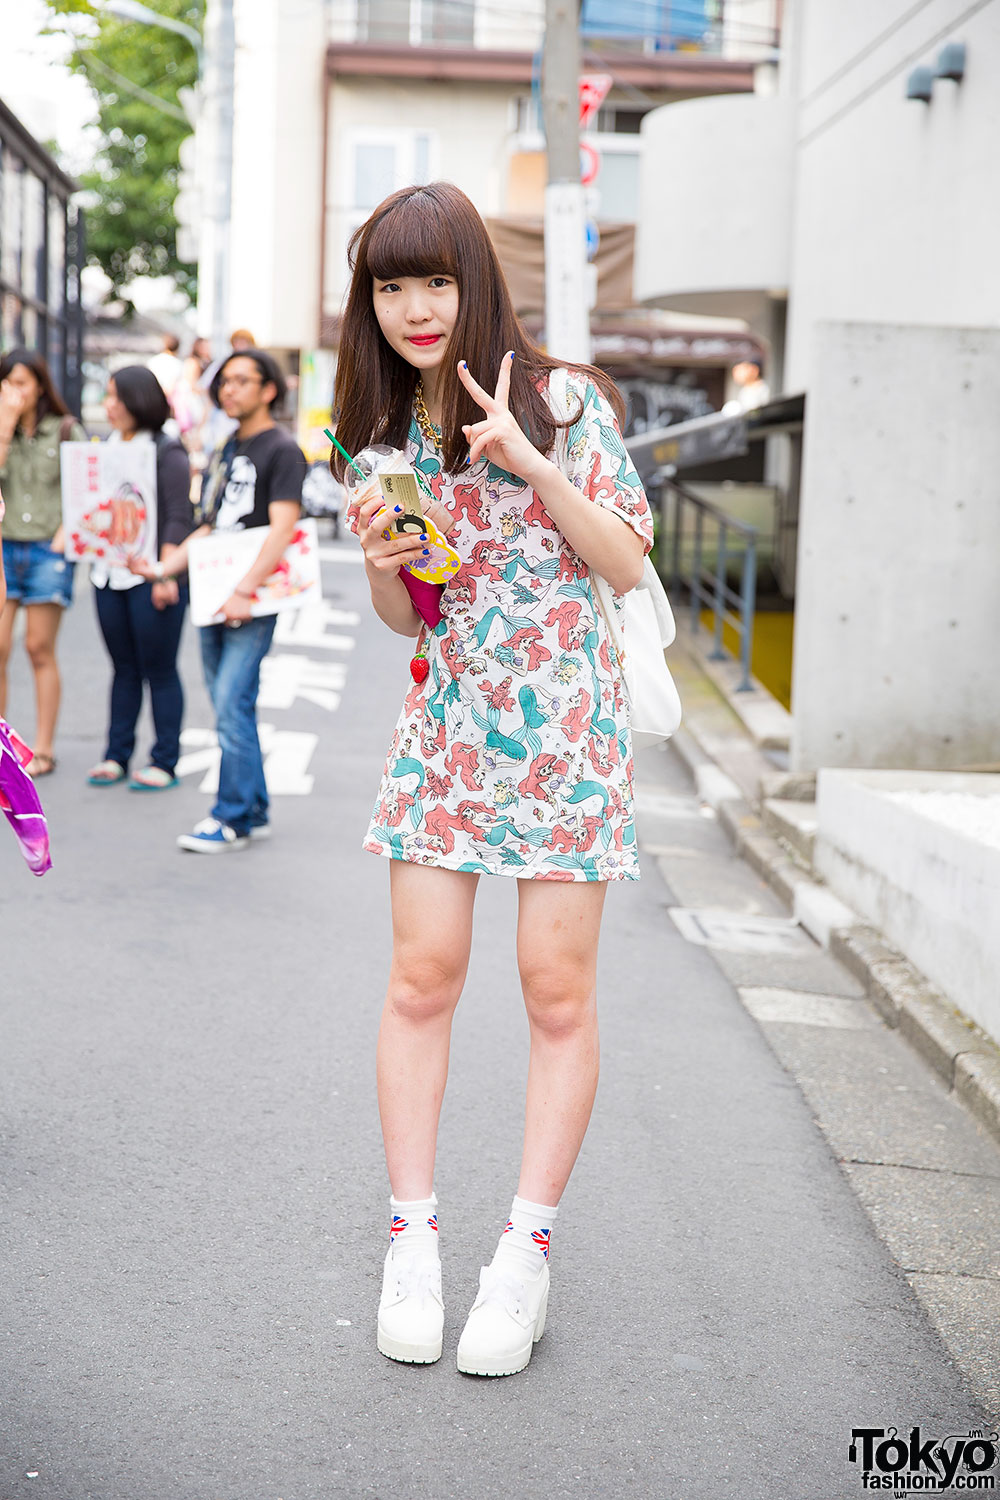 Harajuku Girl In Disney Ariel T Shirt Dress Wego Backpack Spinns Shoe